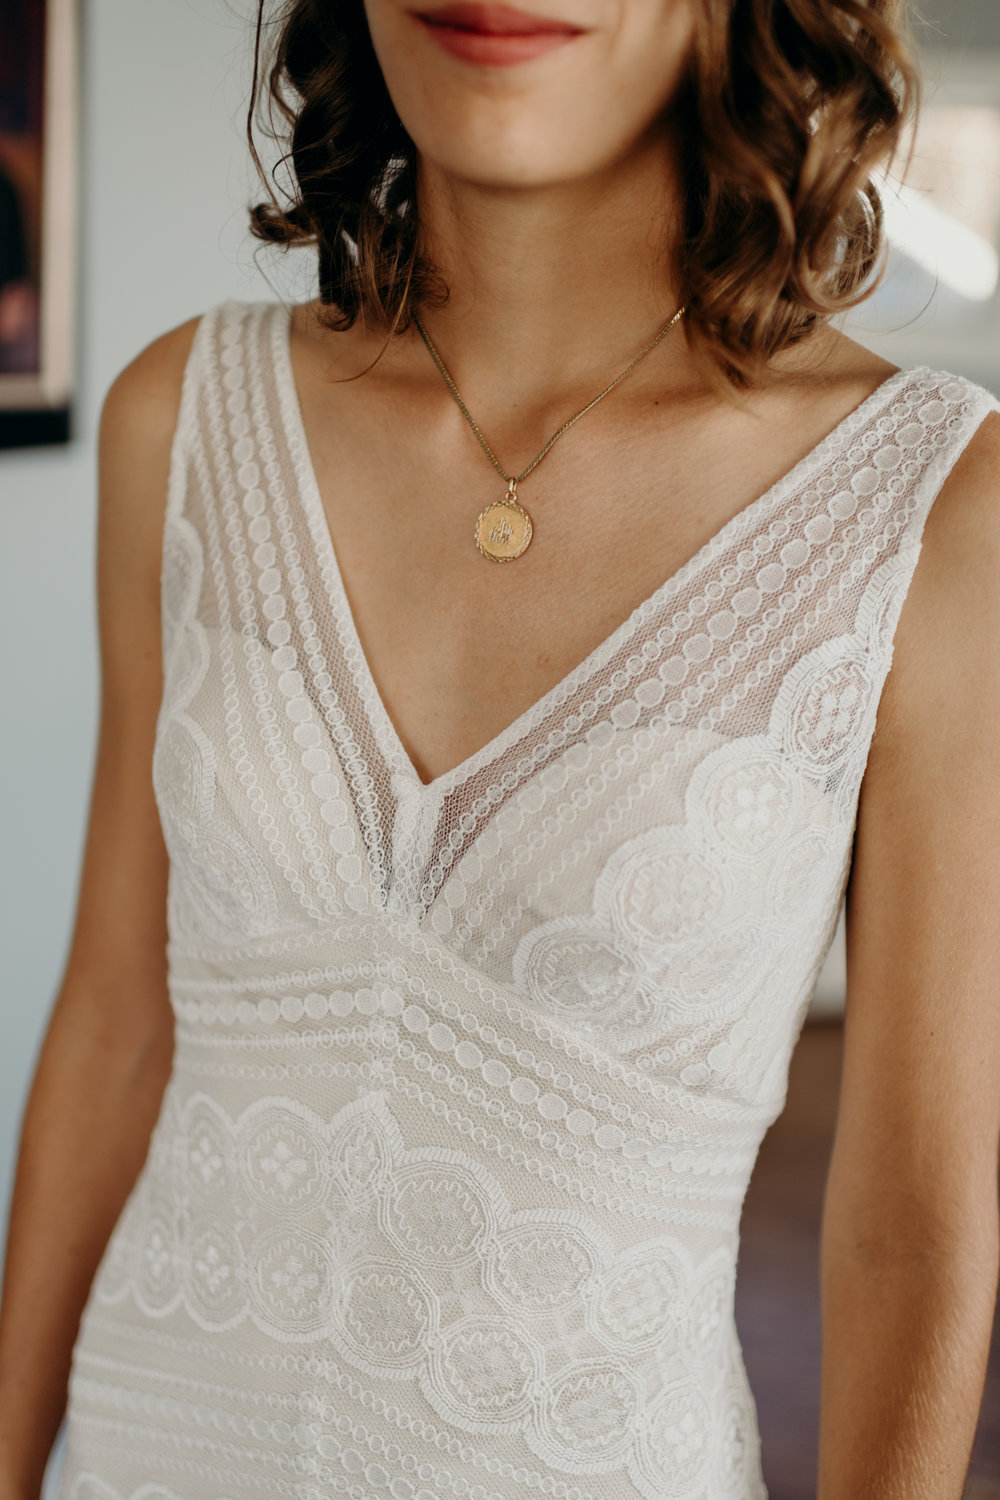 Bride wearing a gold round pendant necklace.